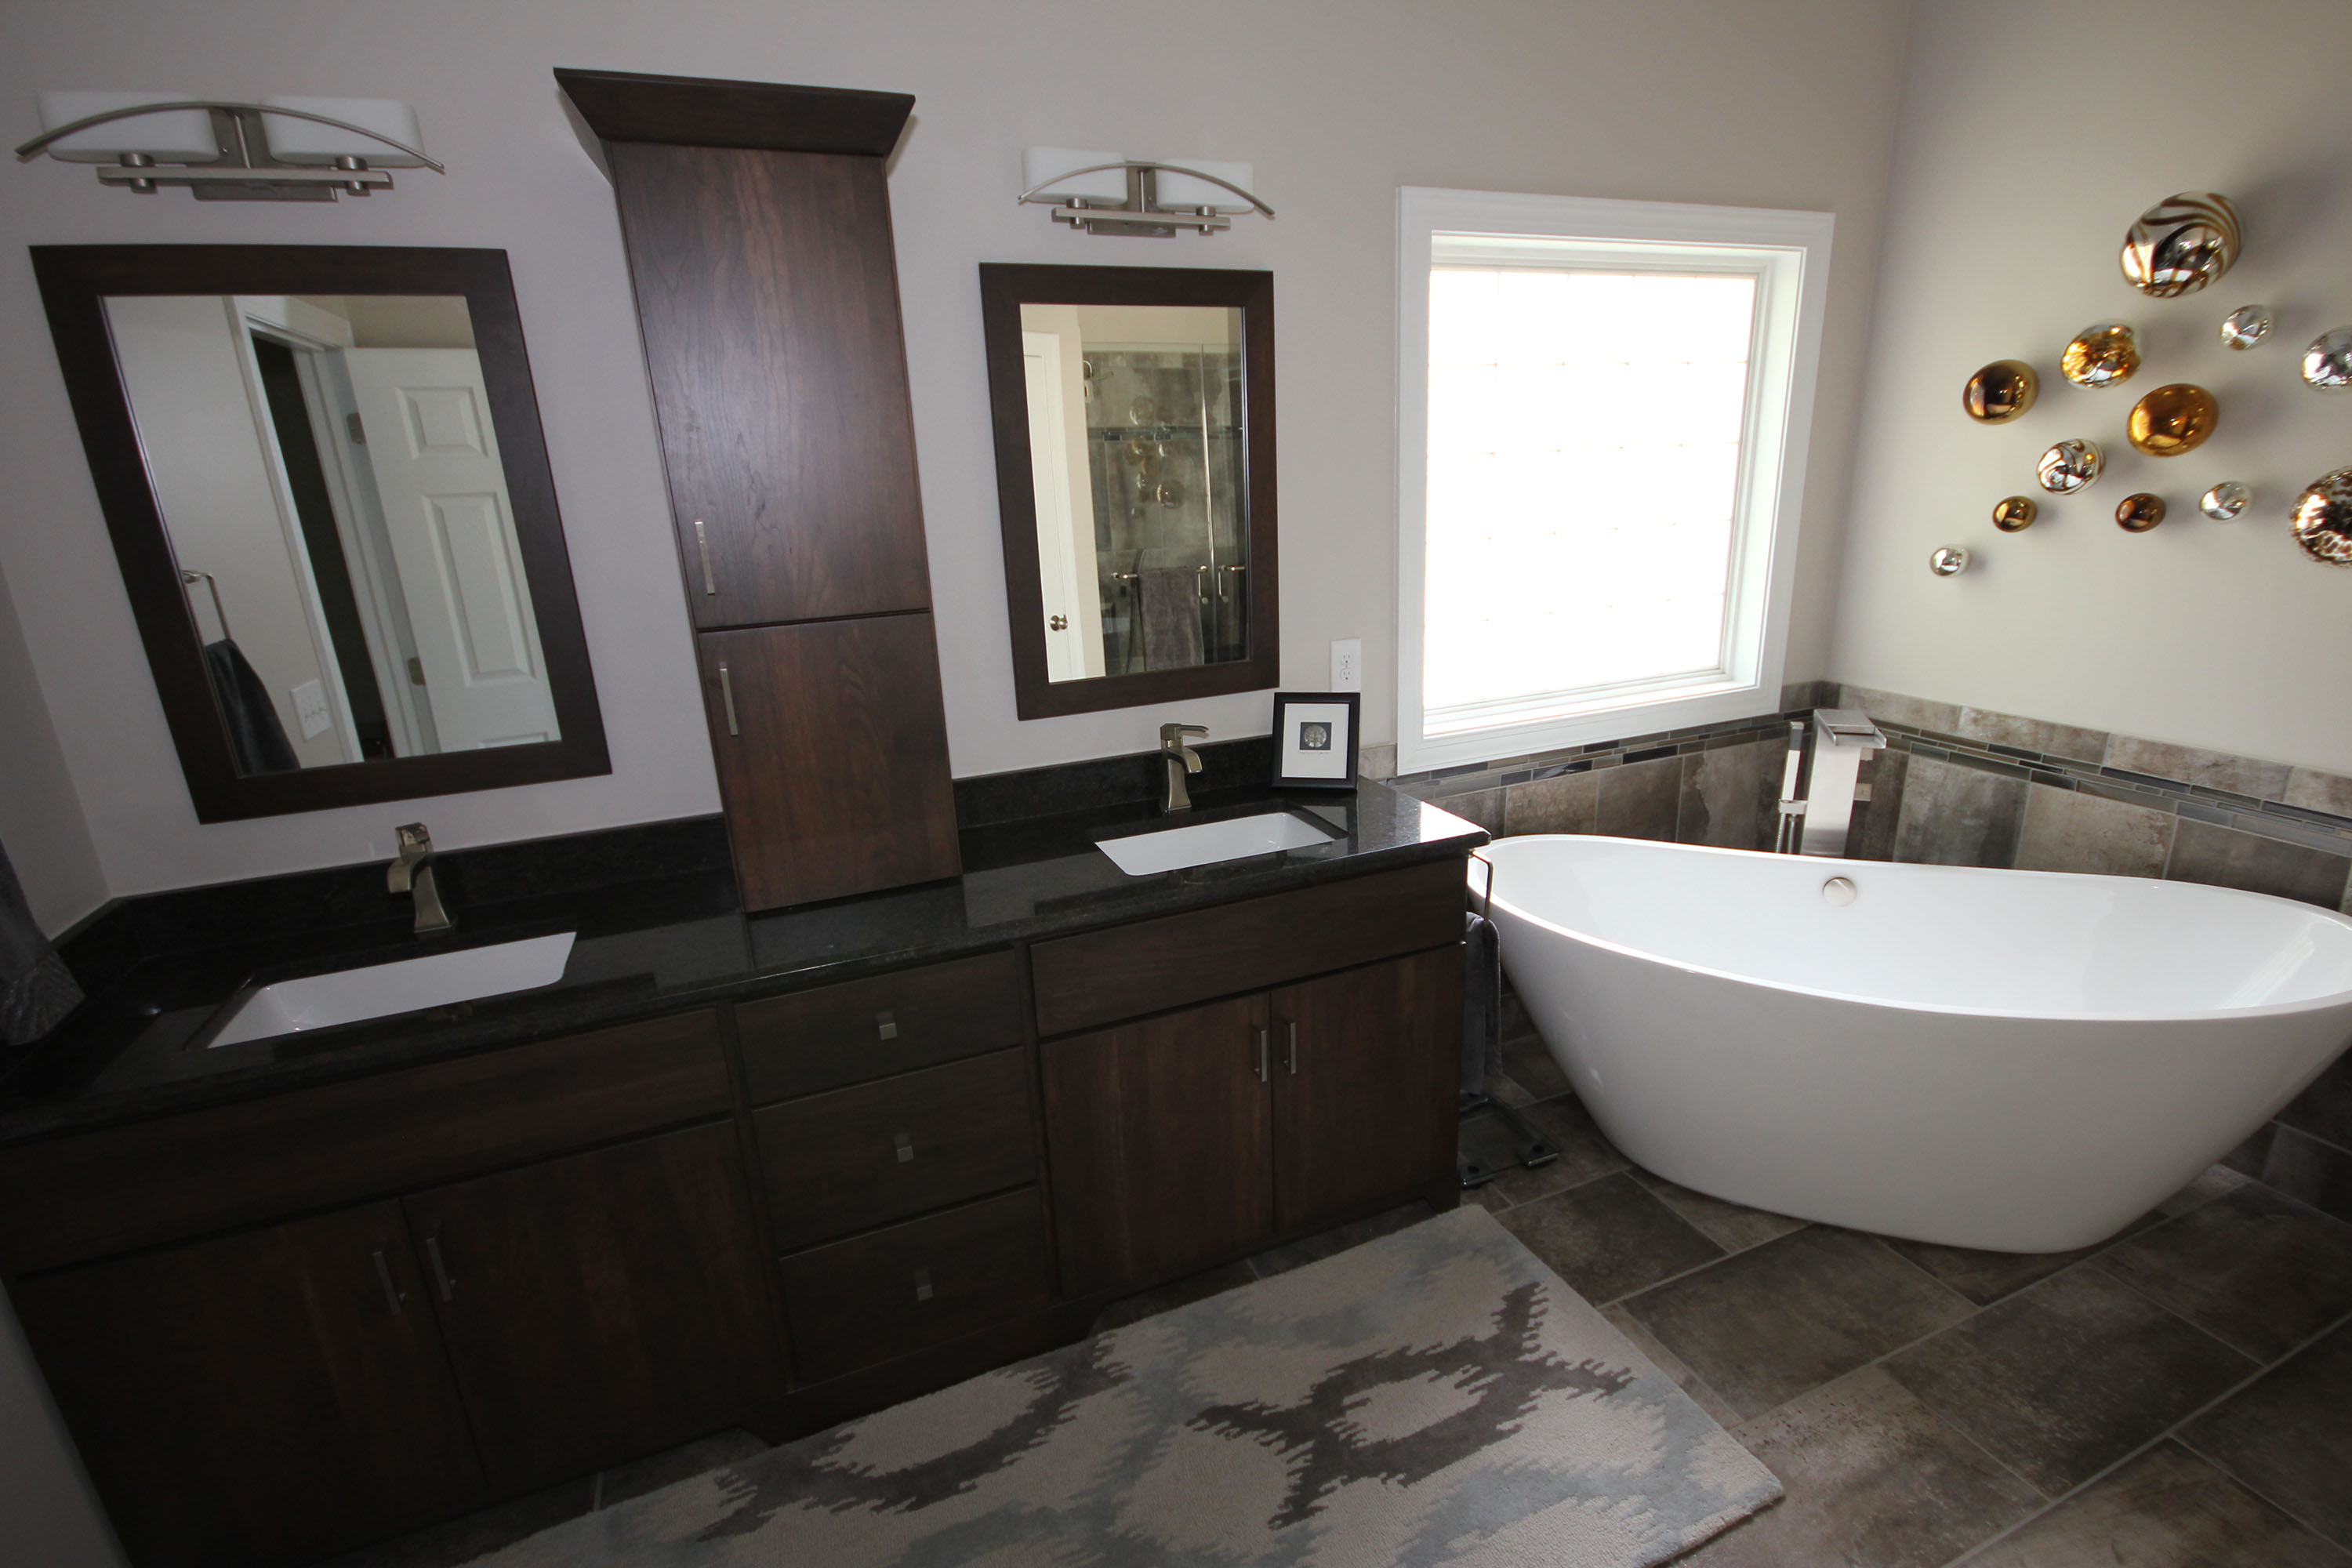 Freestanding Tub. View Image · Bathroom Remodeling Cary. View Image